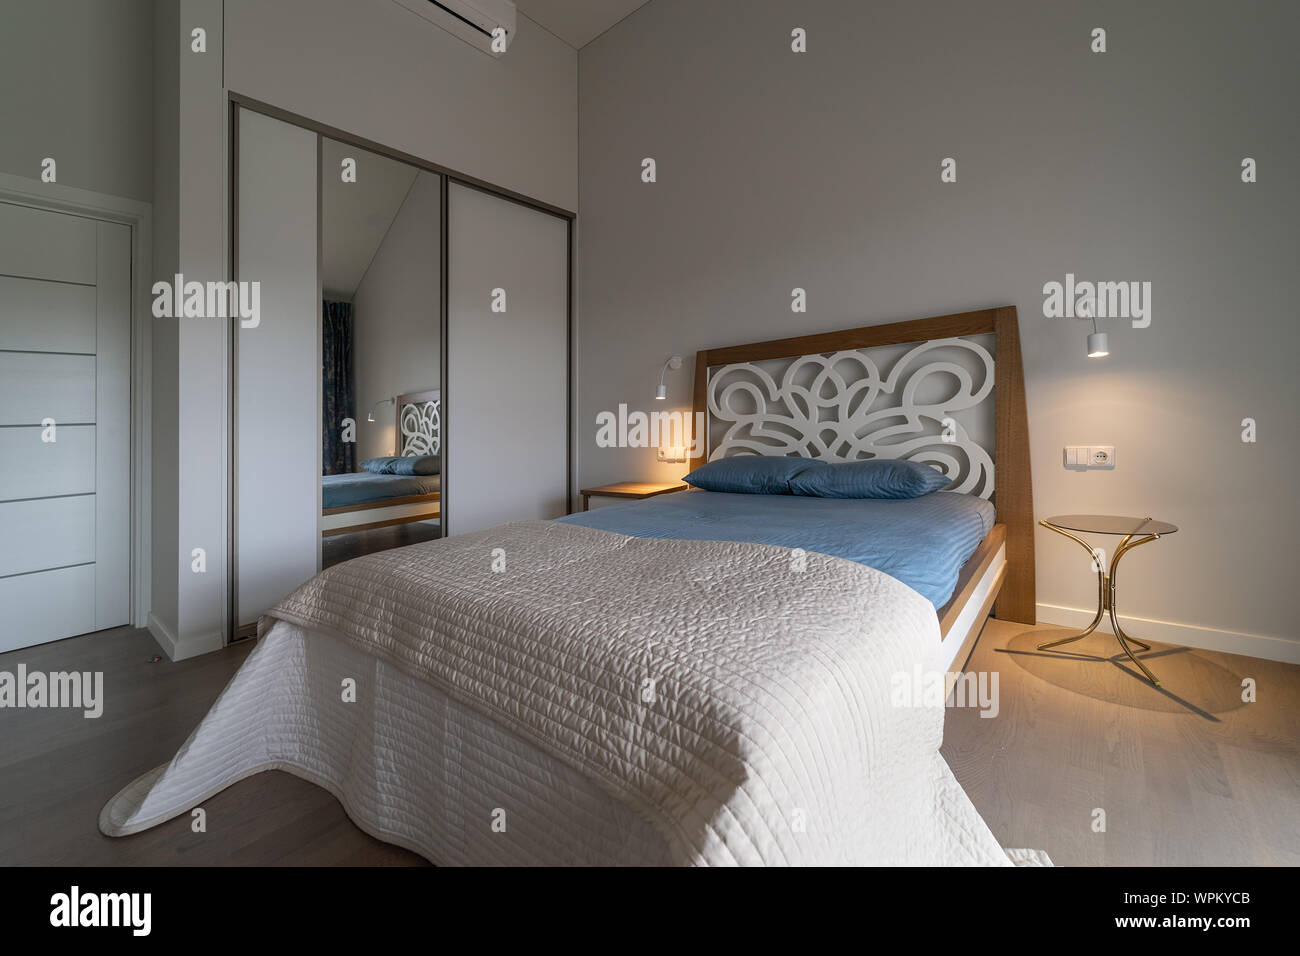 Main Bedroom With Big Original Bed Bedside Tables Lamps On The Wall And Mirror Wardrobe In The Modern House Stock Photo Alamy